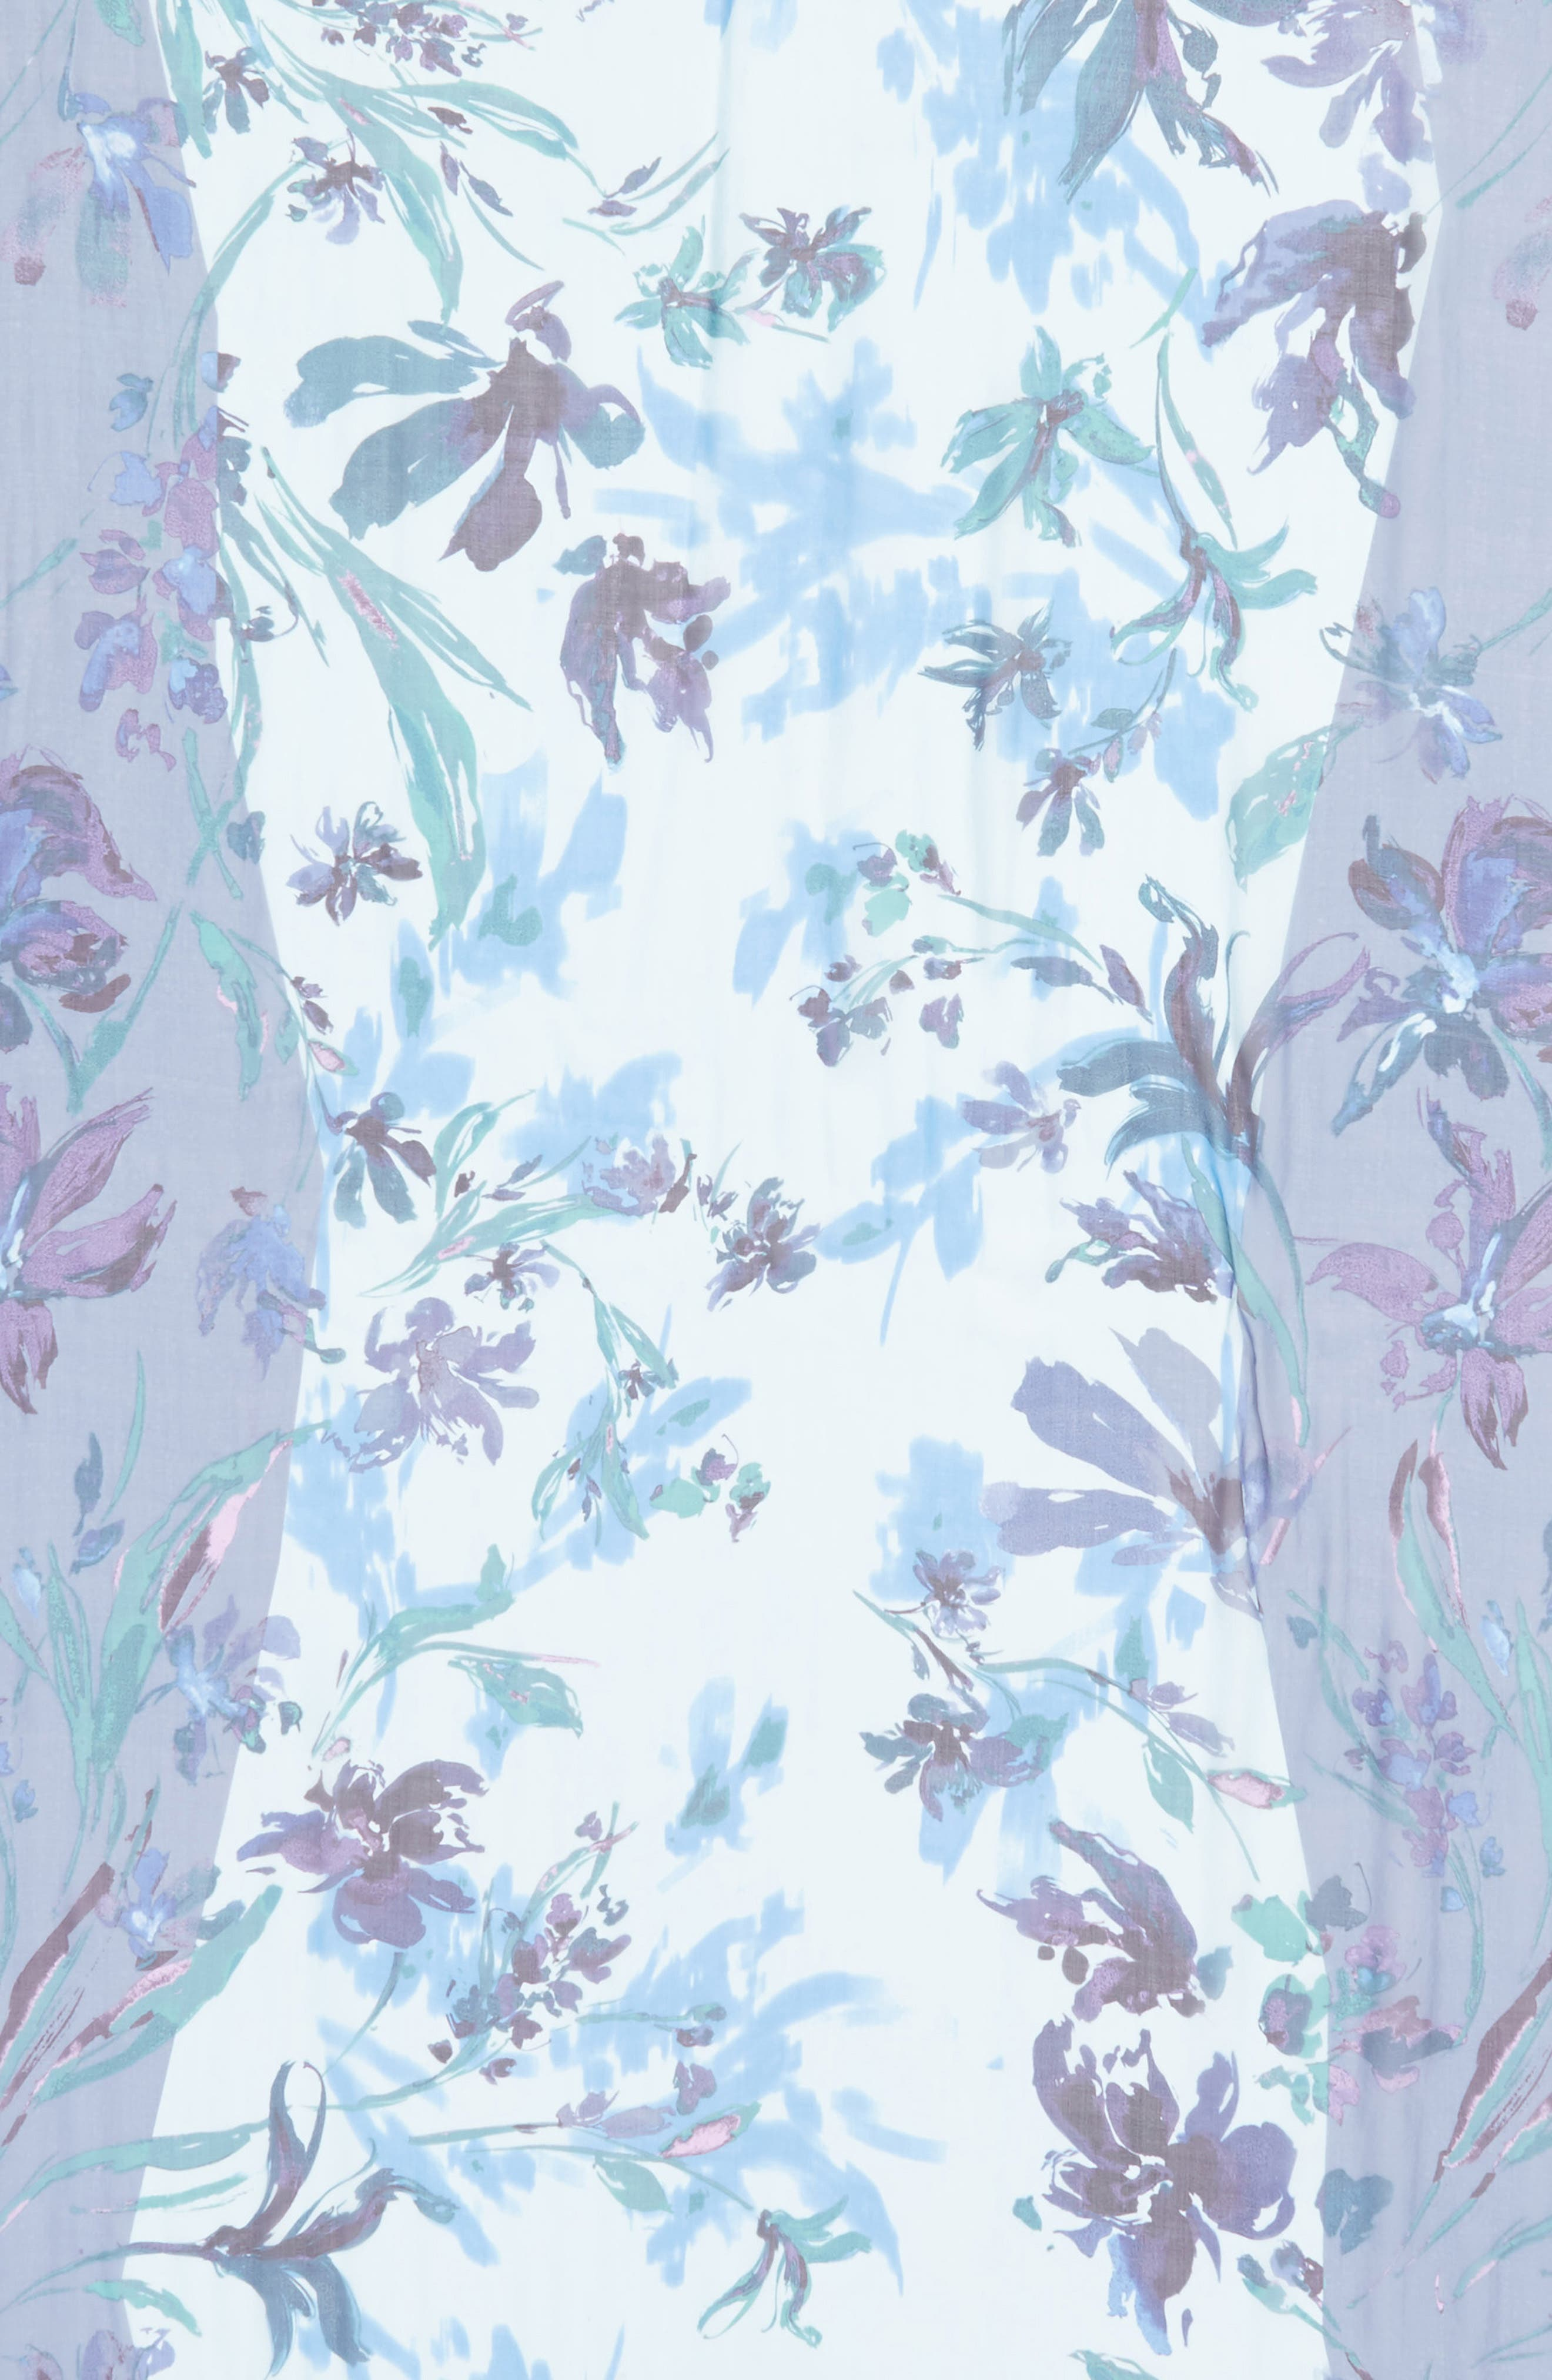 Silk Chiffon Oblong Scarf,                             Alternate thumbnail 4, color,                             Blue Mapped Floral Mix